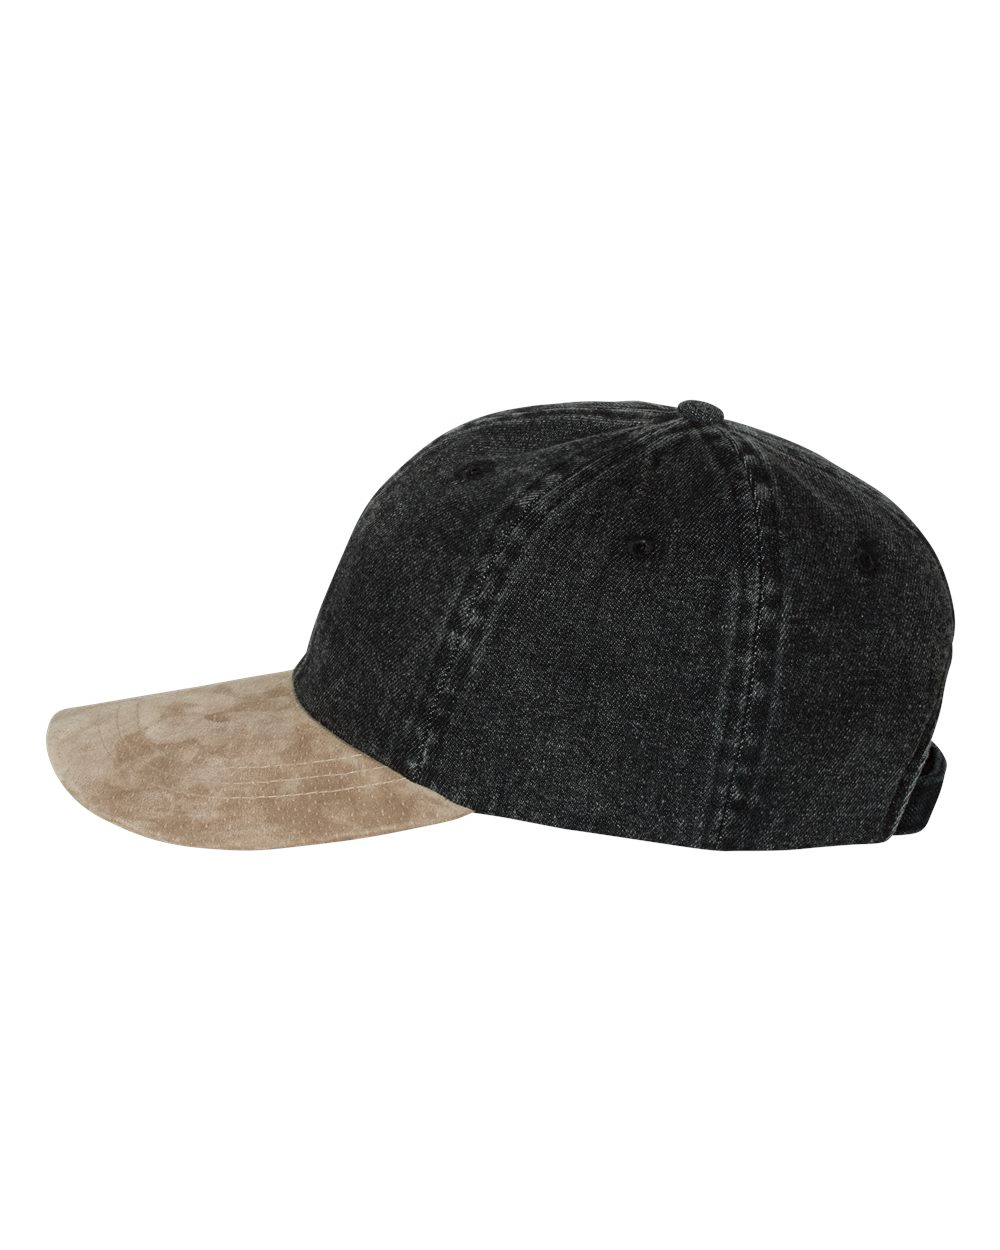 Mega Cap 7611 - Washed Denim With Suede Bill Cap